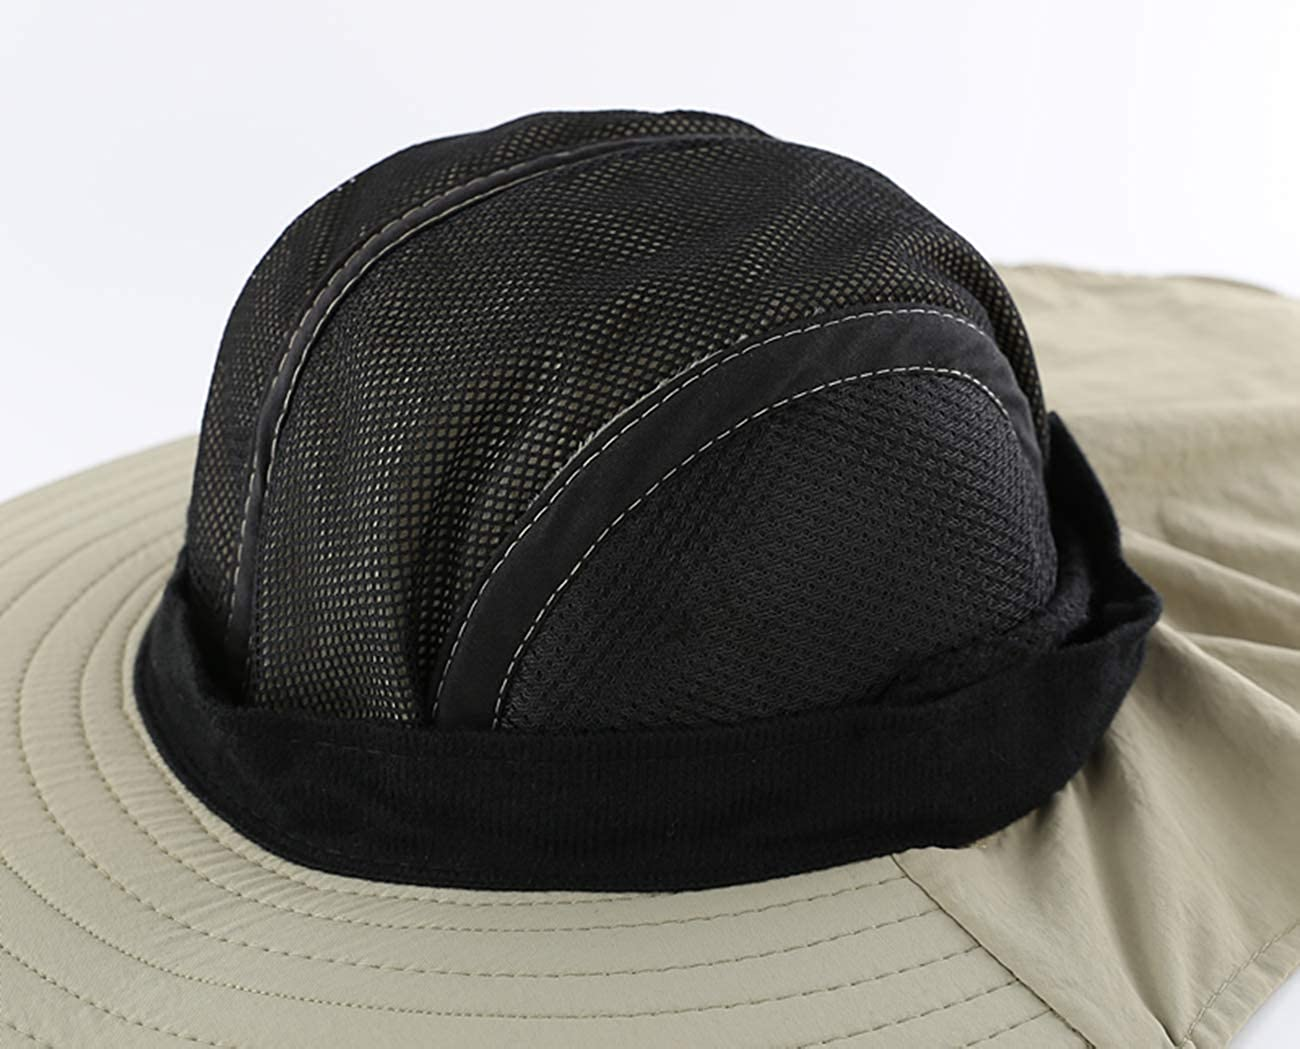 LLmoway Mens Mesh Flap Sun Hat UPF50 Wide Brim Breathable Outdoor Fishing Cap